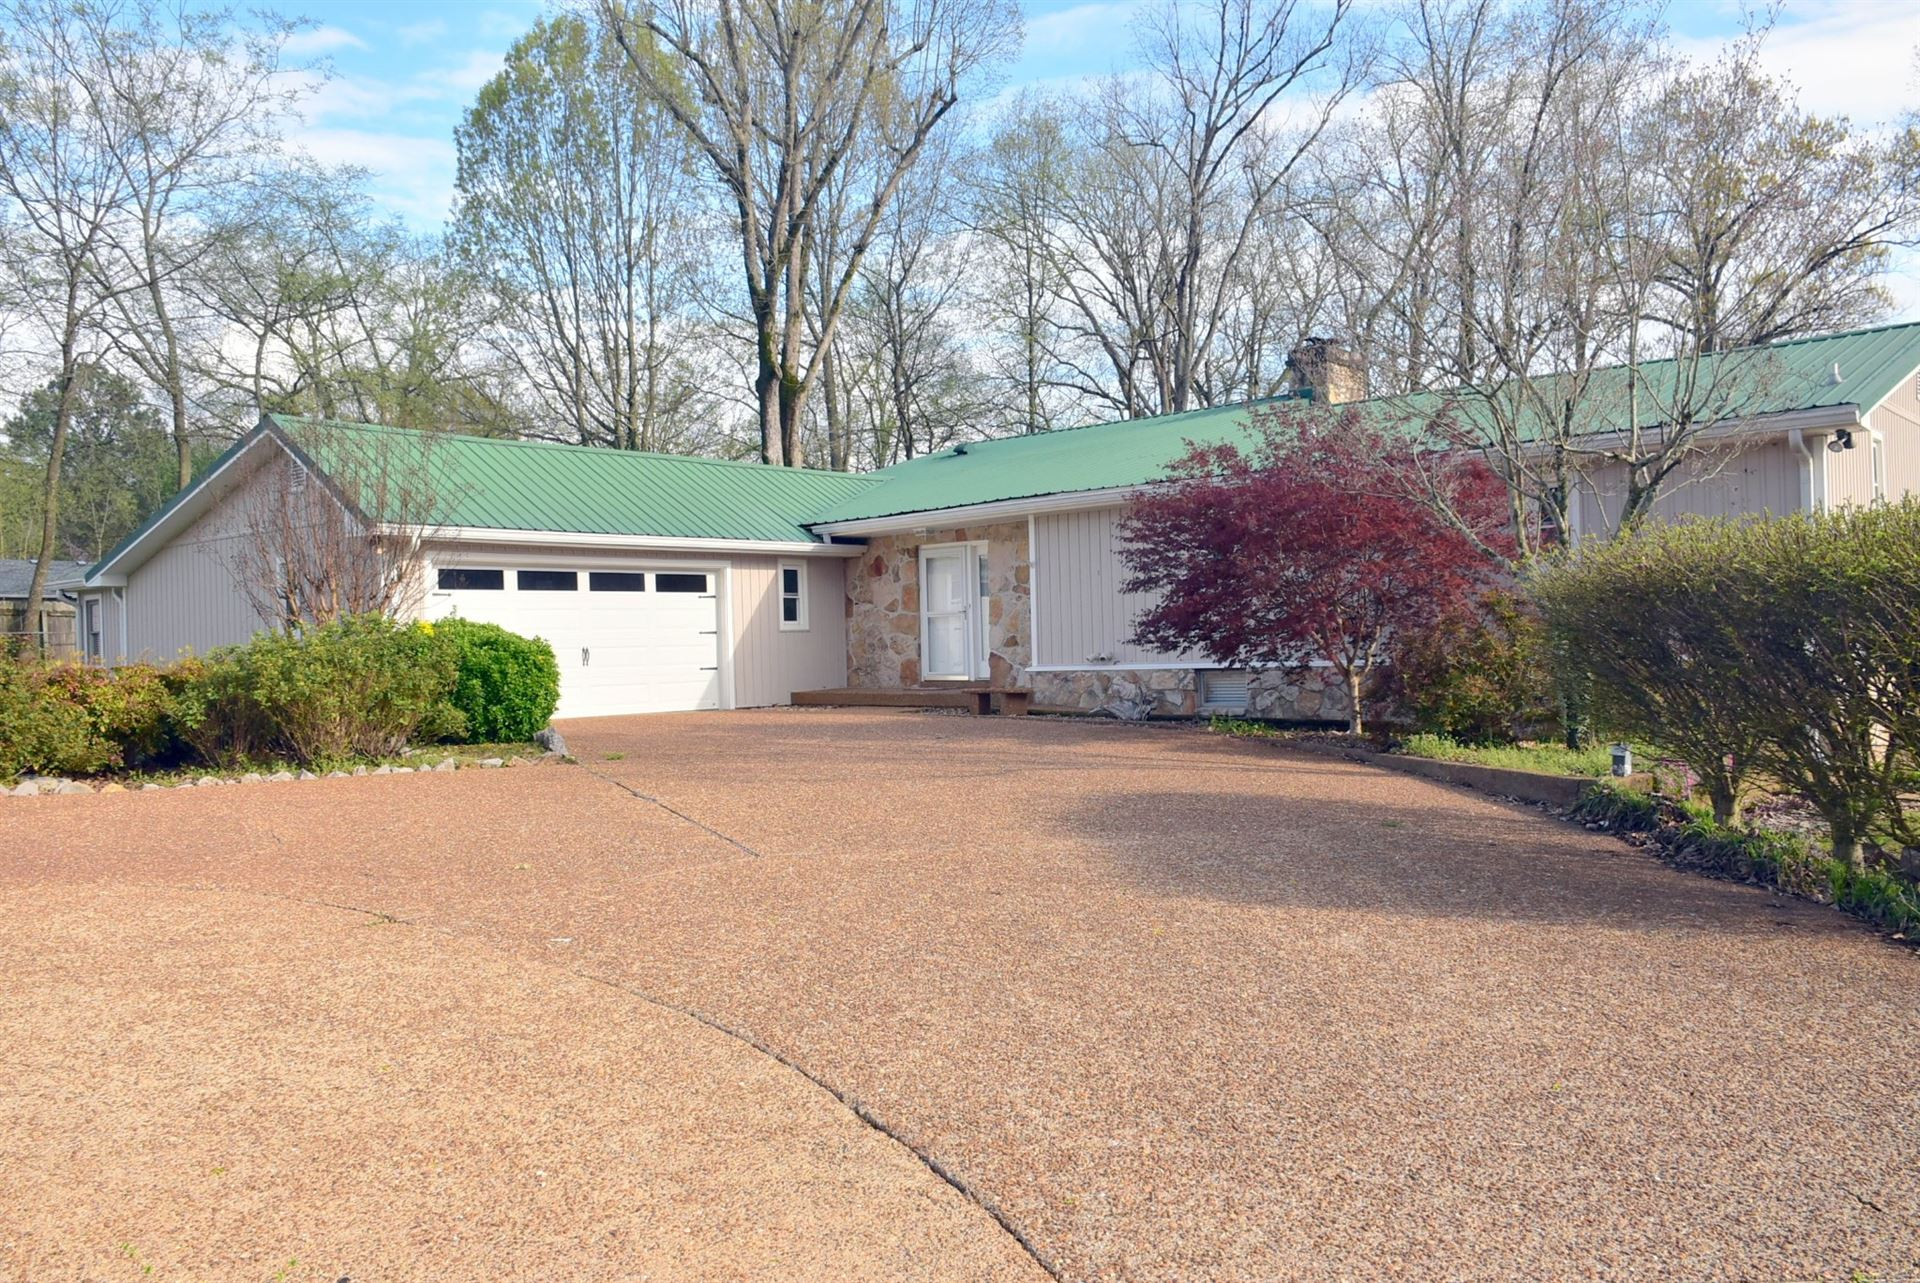 Photo of 3045 Dell Dr, Hermitage, TN 37076 (MLS # 2130218)